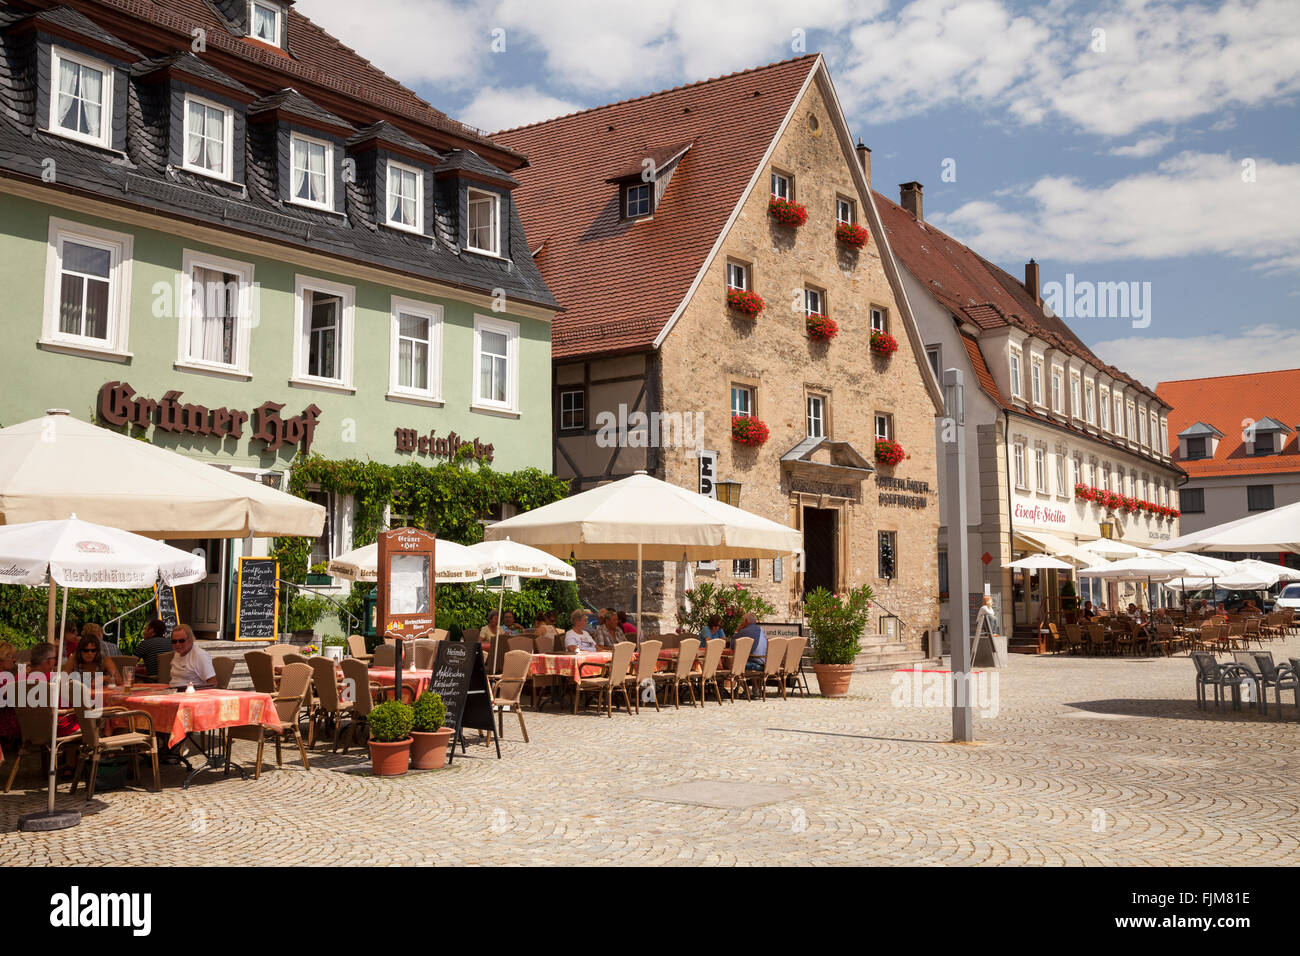 geography / travel, Germany, Baden-Wuerttemberg, Weikersheim on the Tauber, squares, marketplace with Tauber Valley - Stock Image